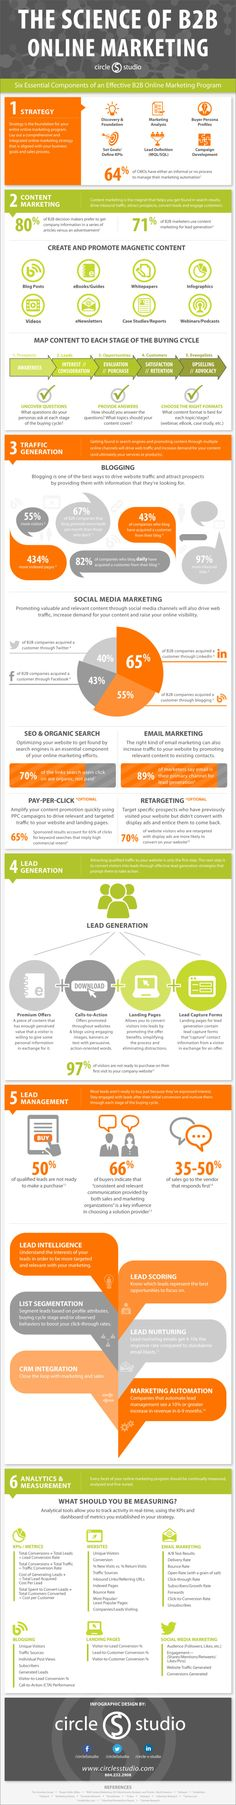 The science of B2B online marketing #infografia #infographic #marketing